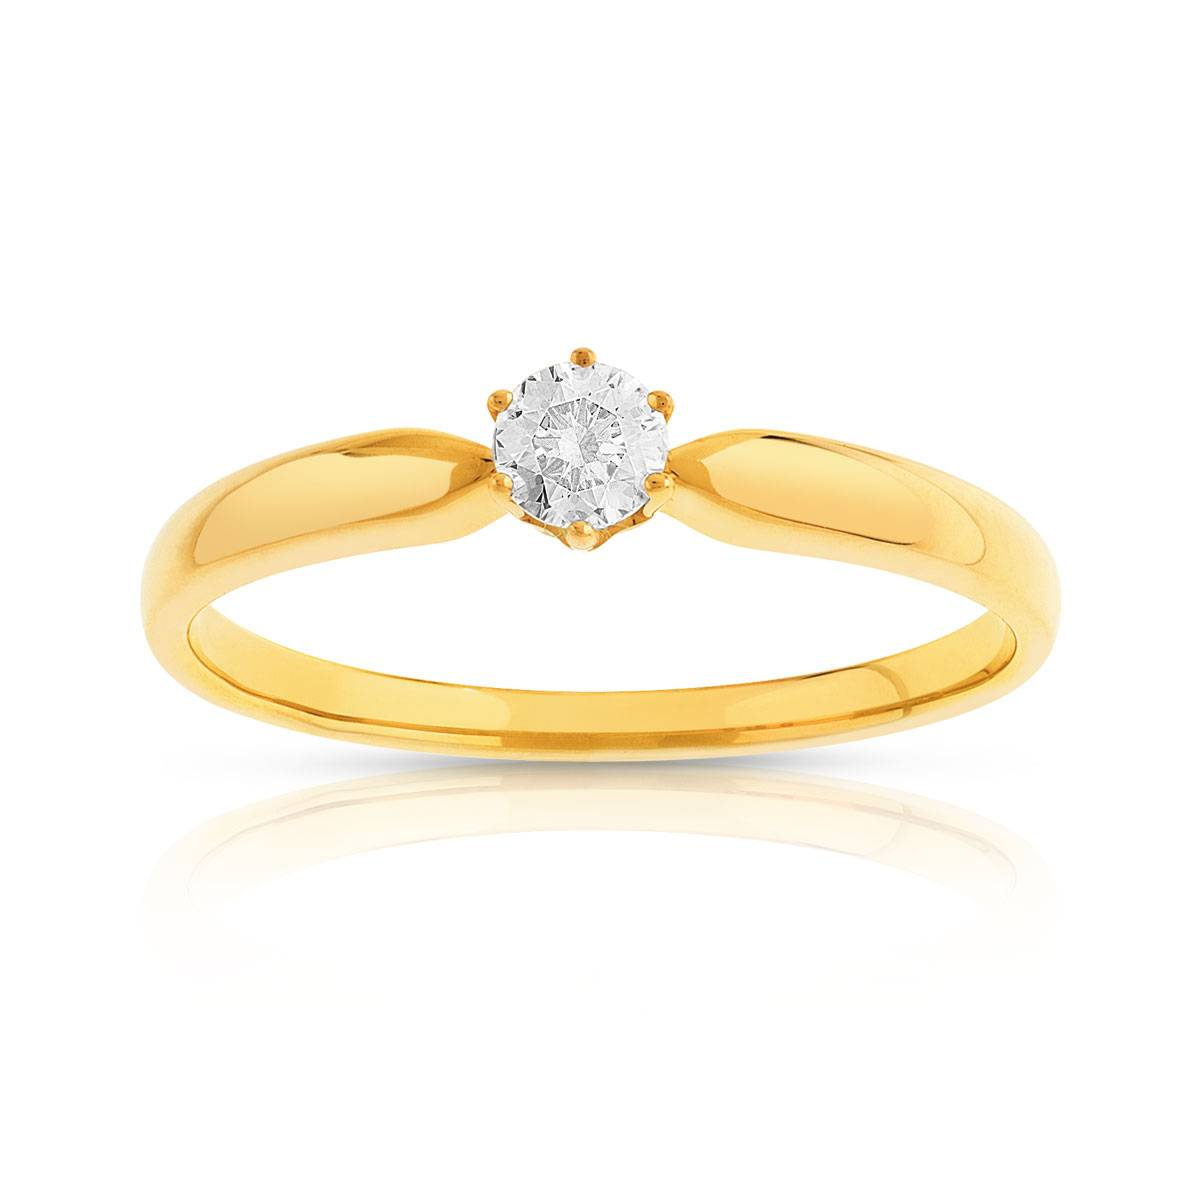 MATY Bague solitaire or 750 diamant synthétique 0.15 carat- MATY